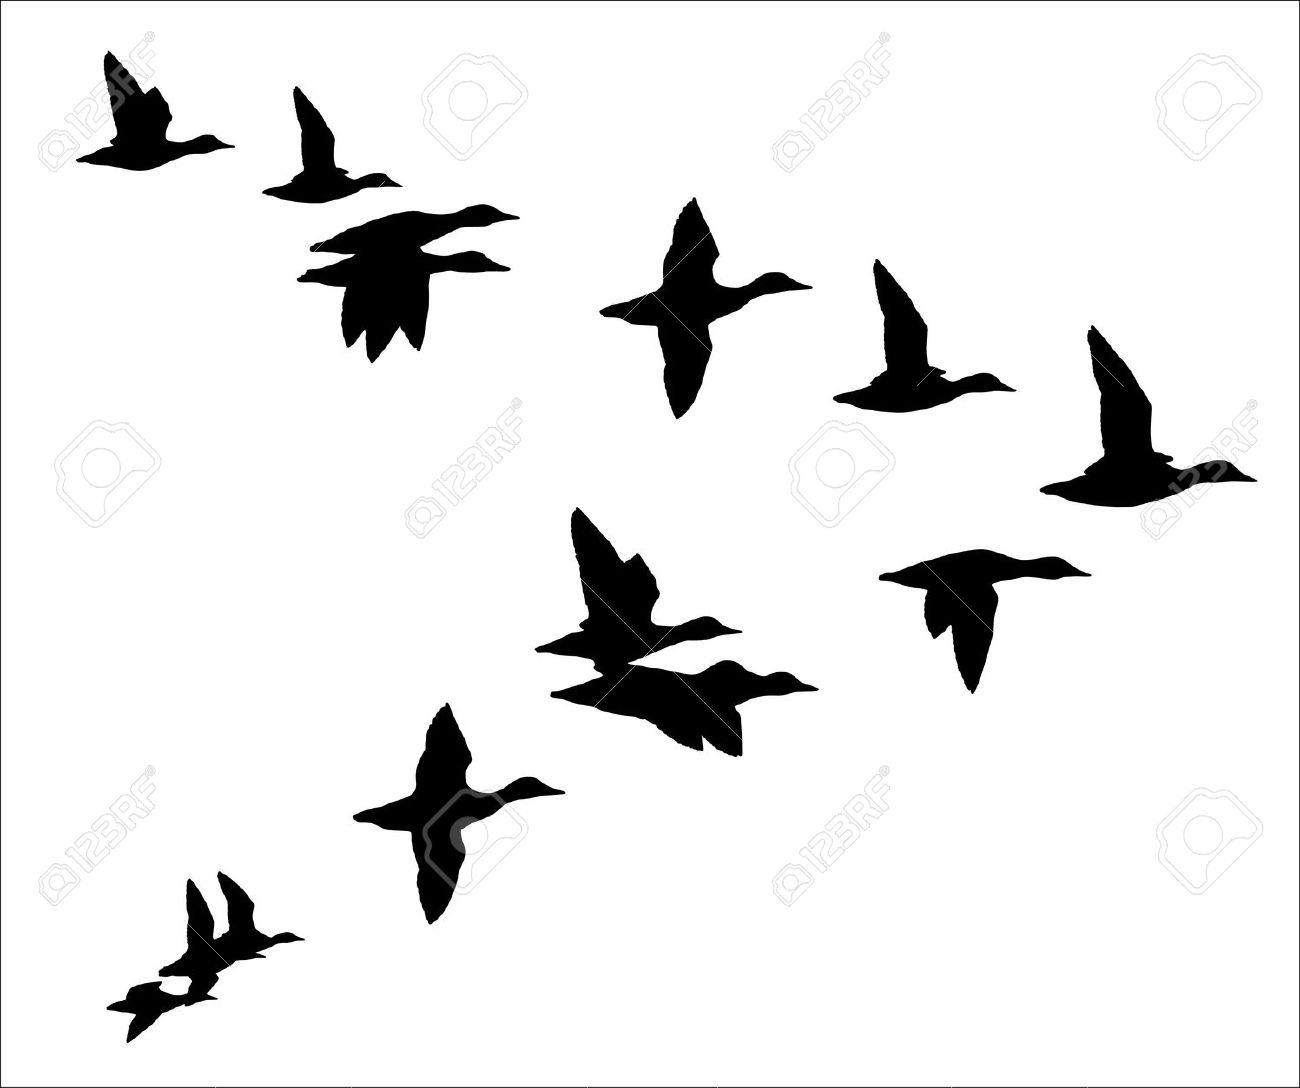 Flock of geese clipart.